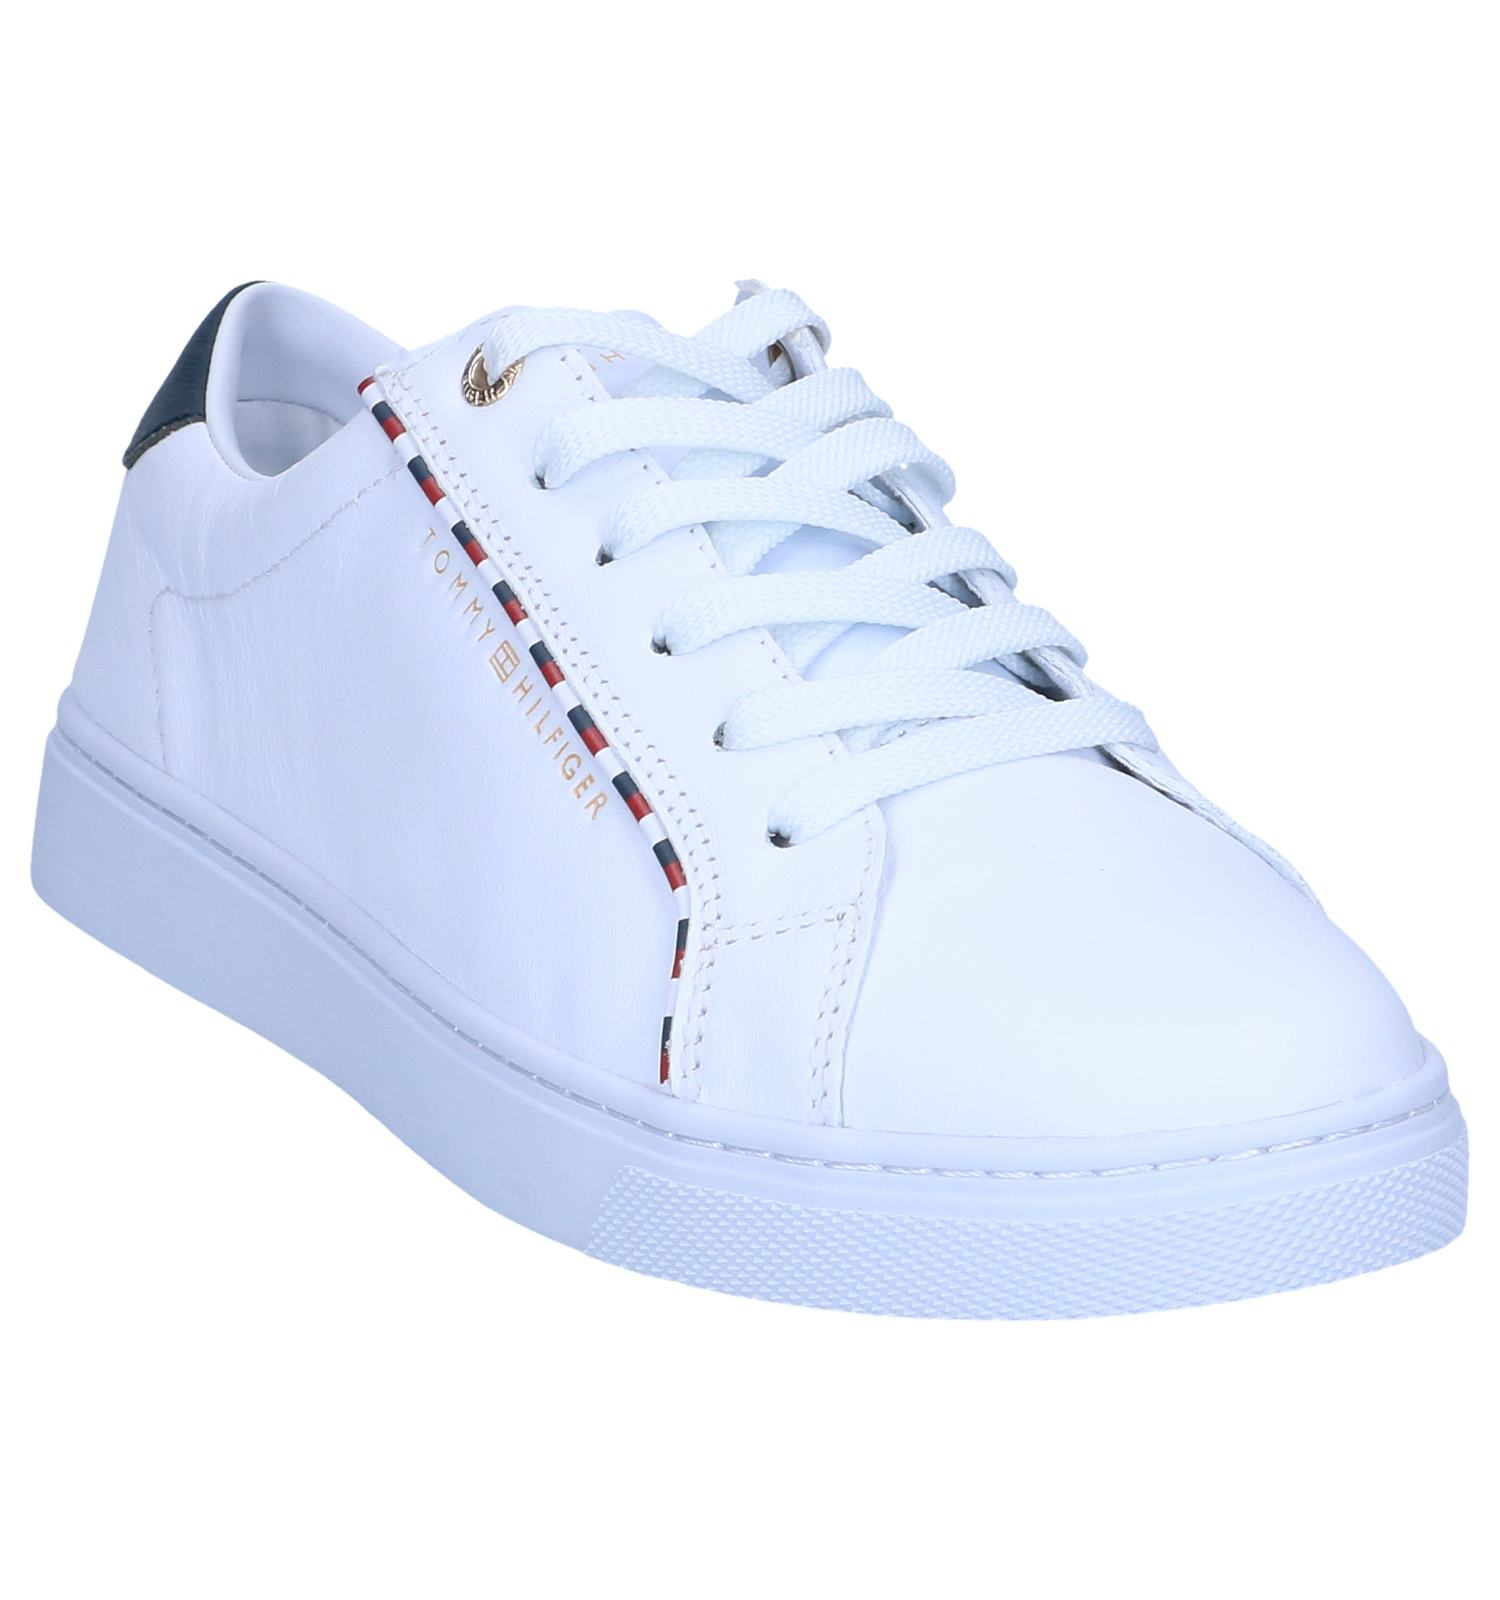 Corporate Detail Witte Sneakers Tommy Hilfiger 4ARqLSc35j